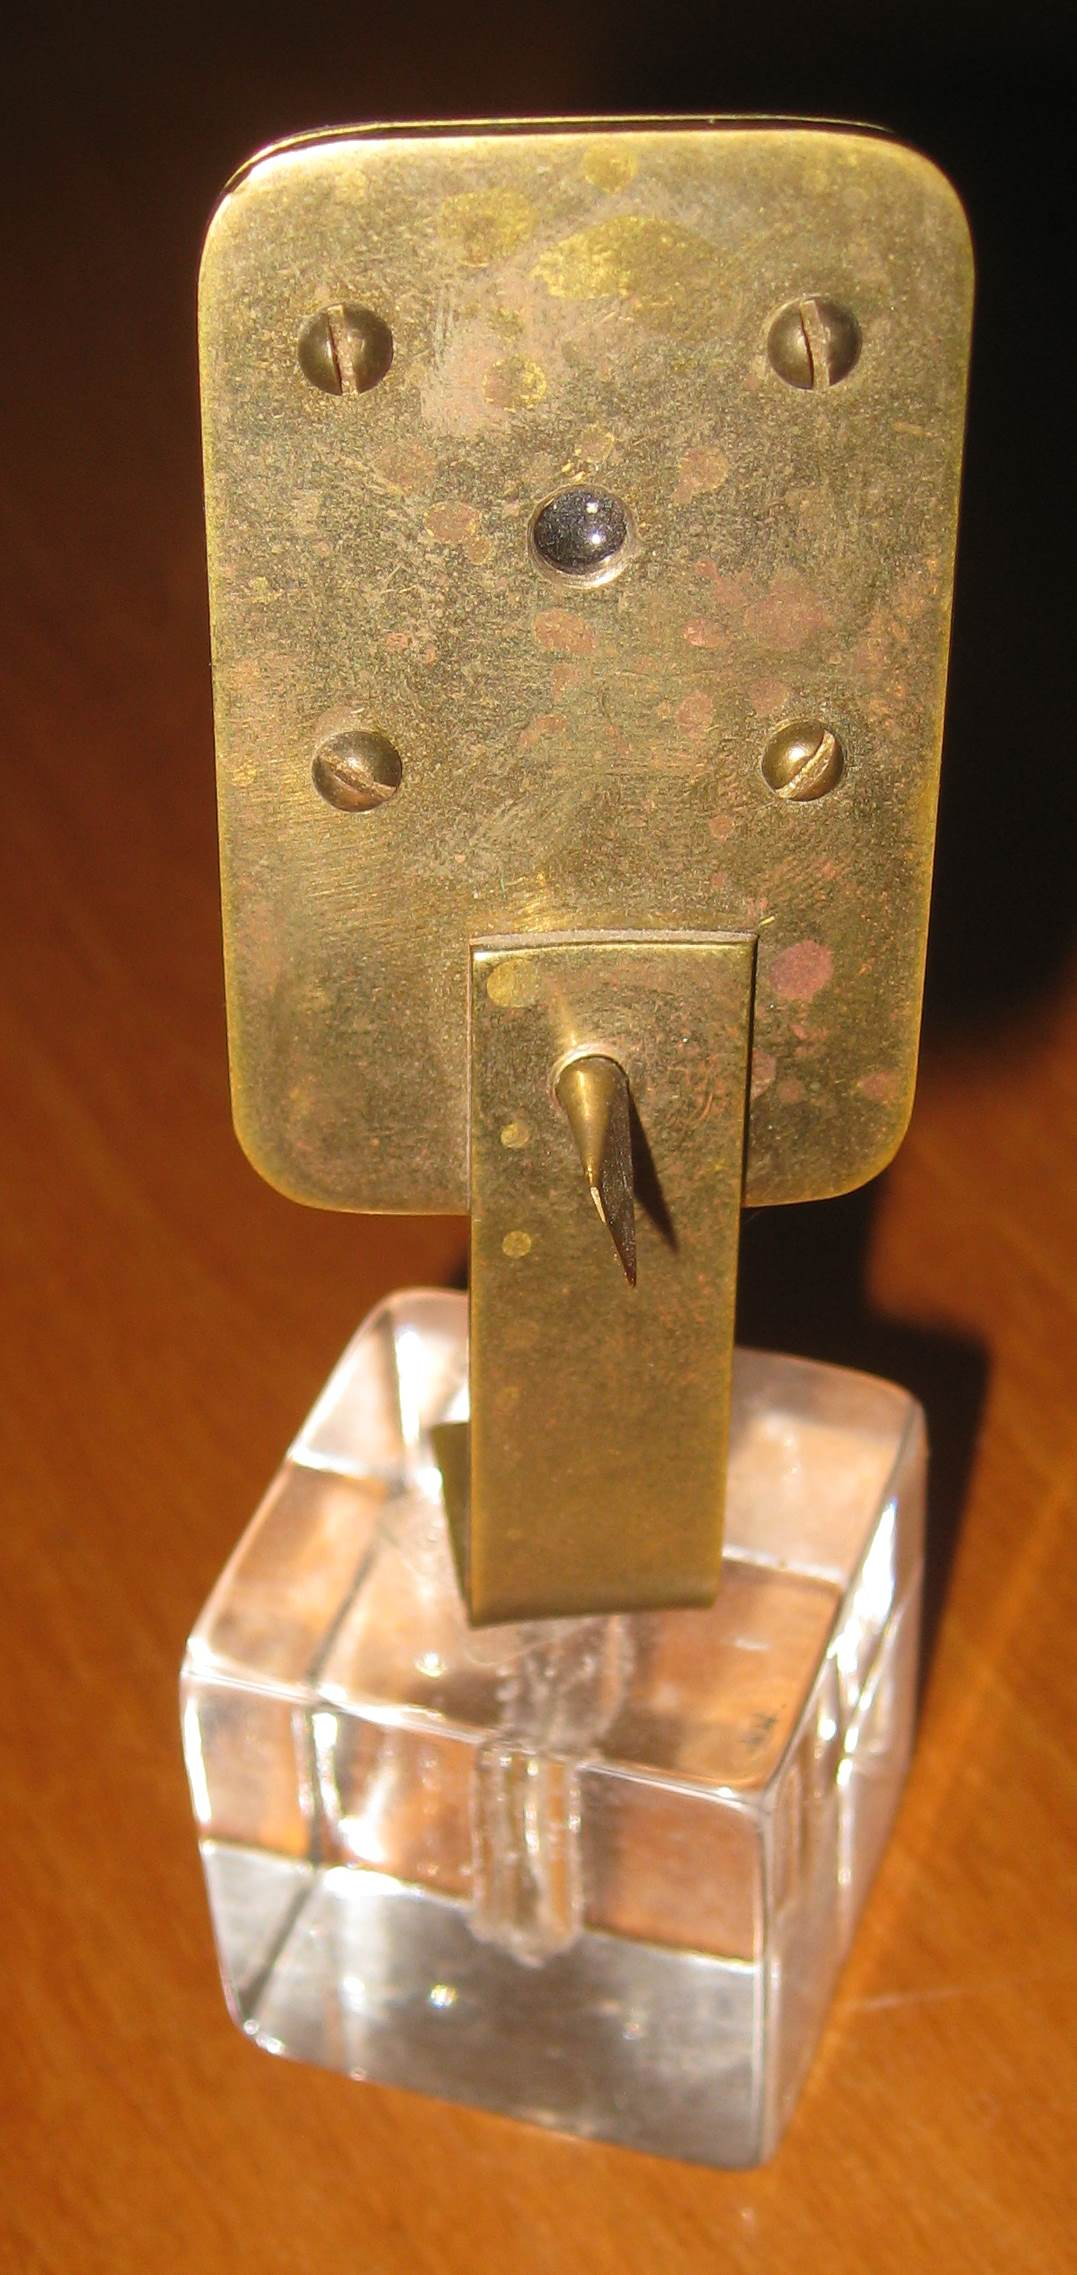 Replica of Anton von Leeuwenhoek's Microscope